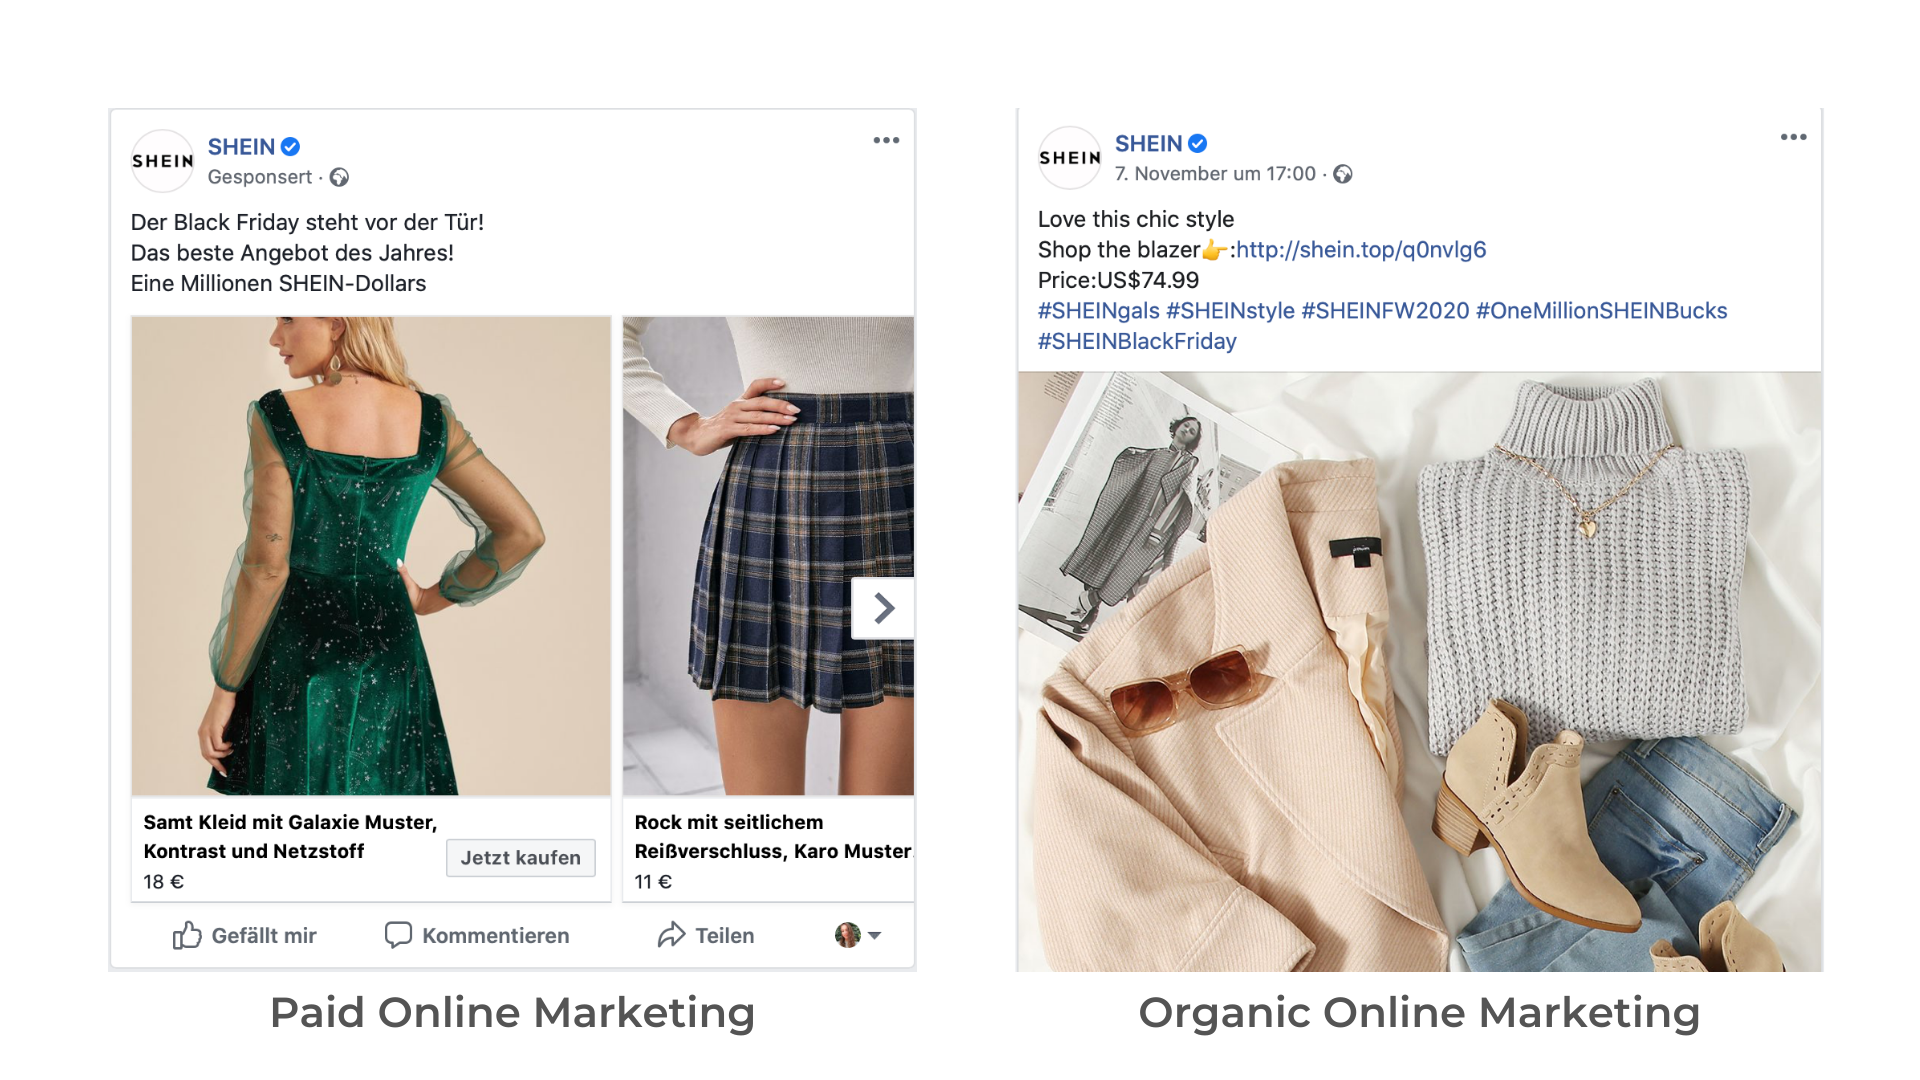 Comparison of Paid and Organic Online Marketing